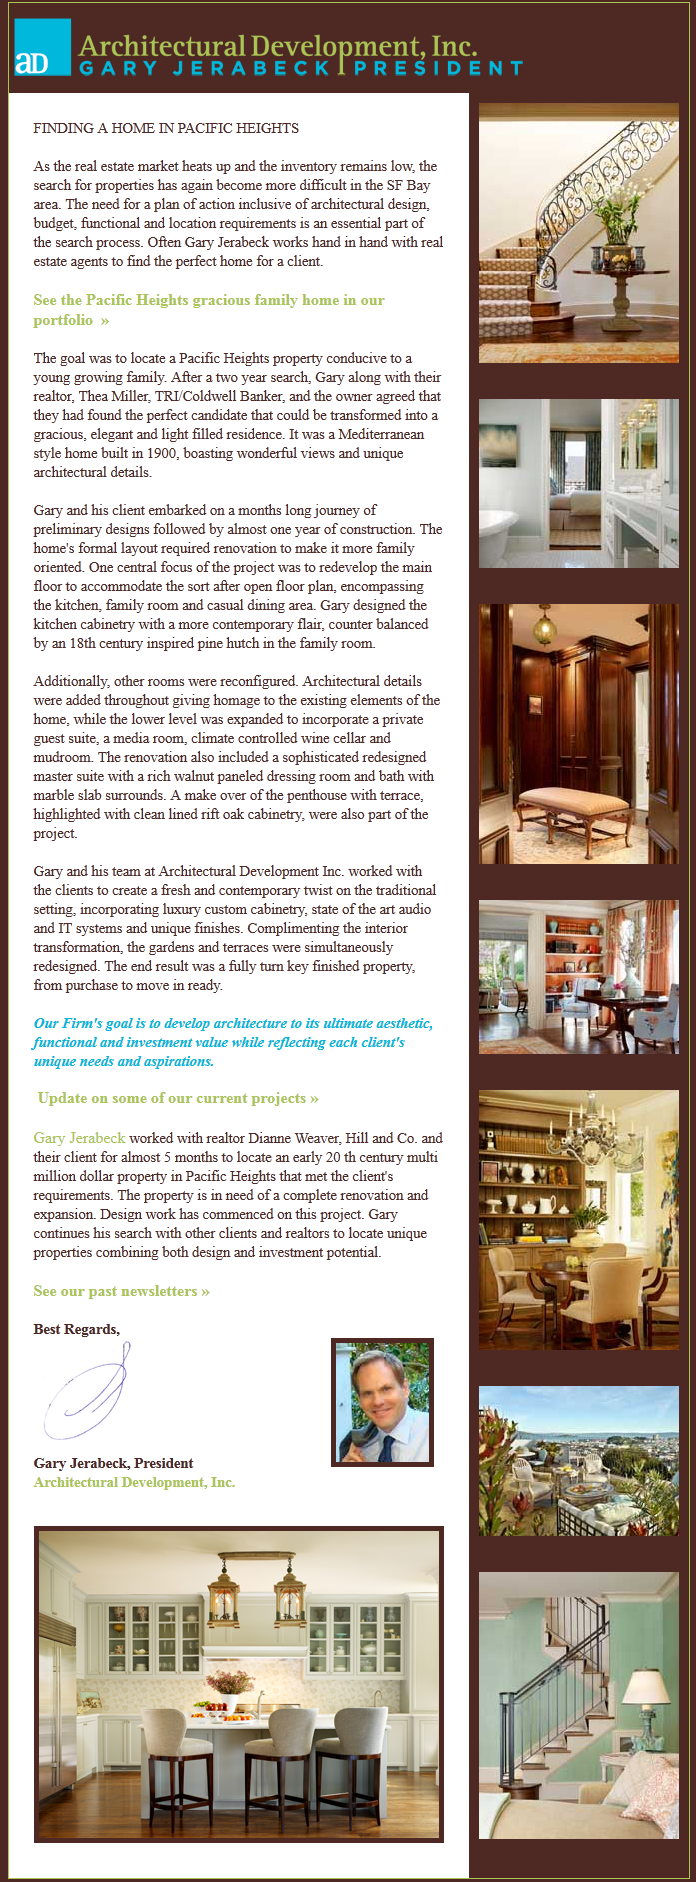 Architectural Development, Inc., Newsletter 6, September 2012